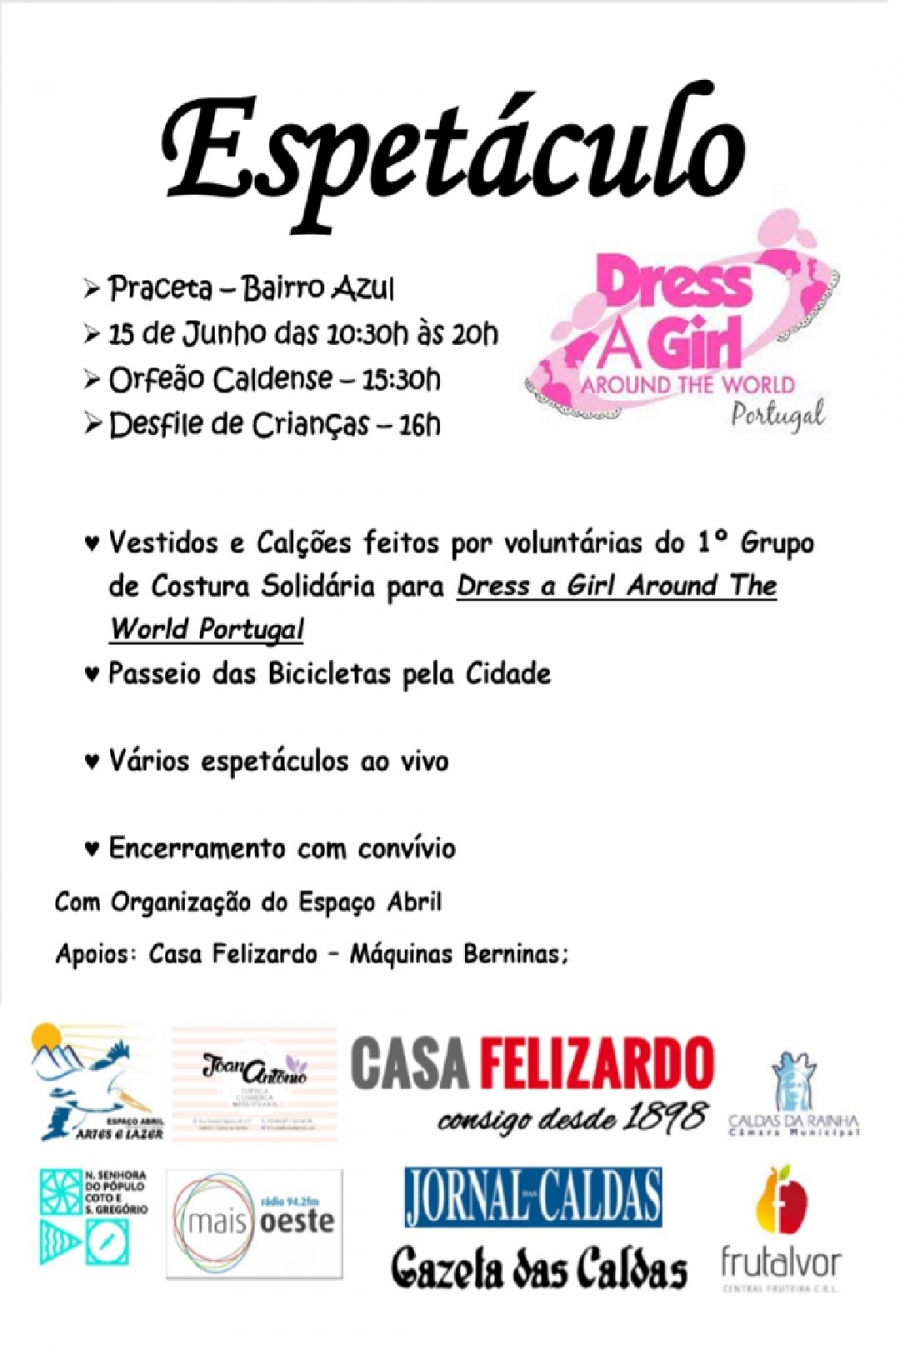 Espectáculo Dress a Girl Around the world